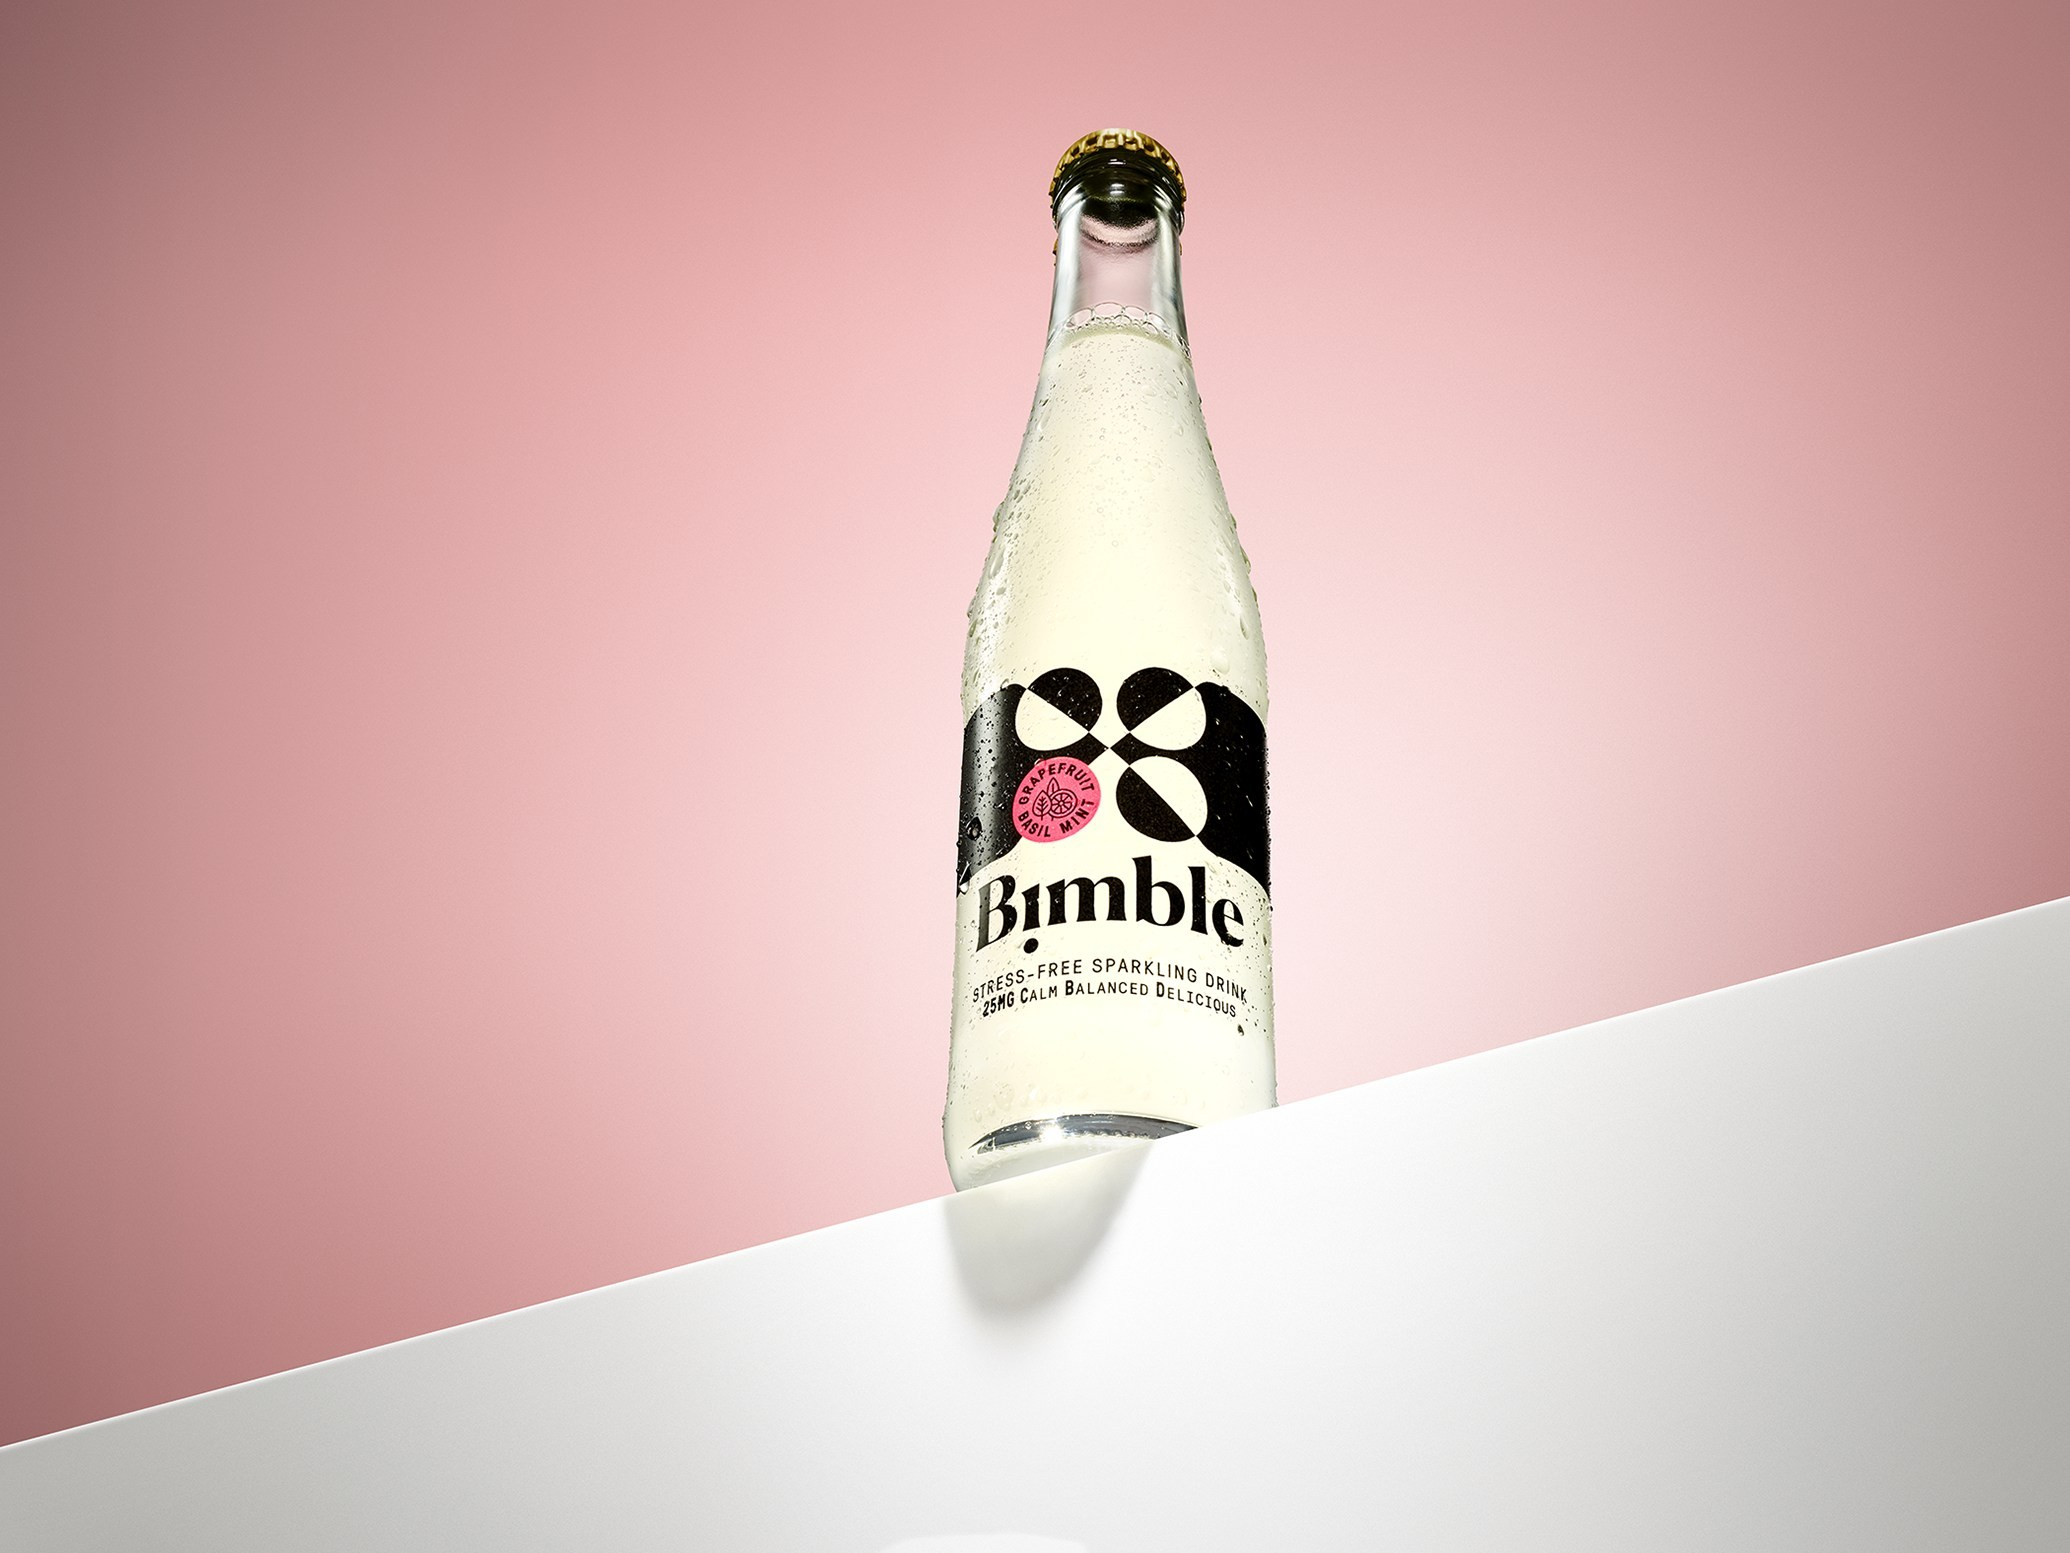 Industry Leading Sparkling CBD Drink Launches Nationally